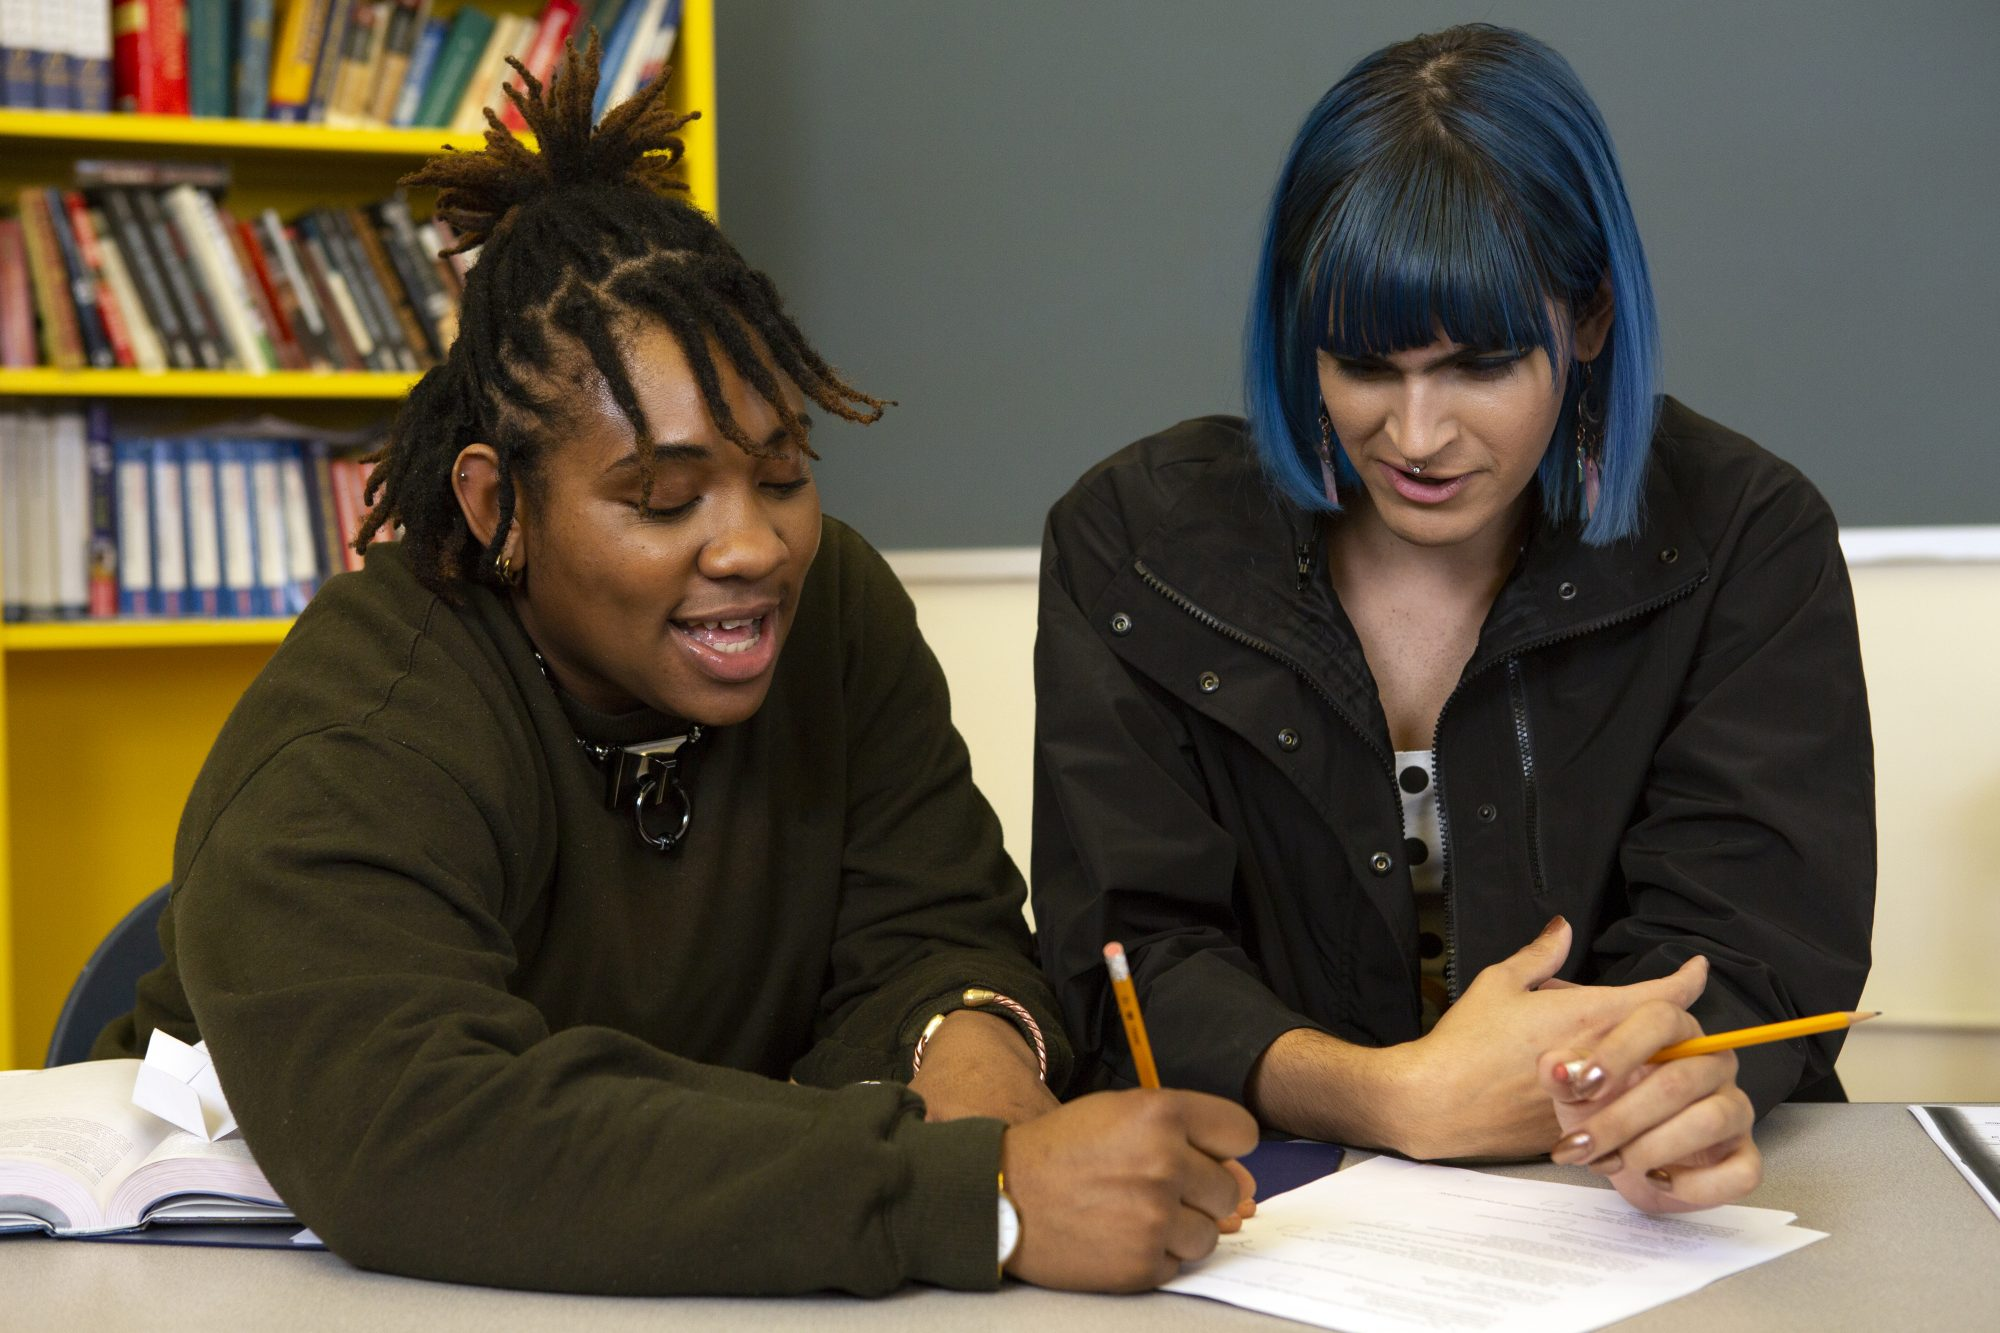 Two-non-binary-students-doing-work-together-in-class.jpg